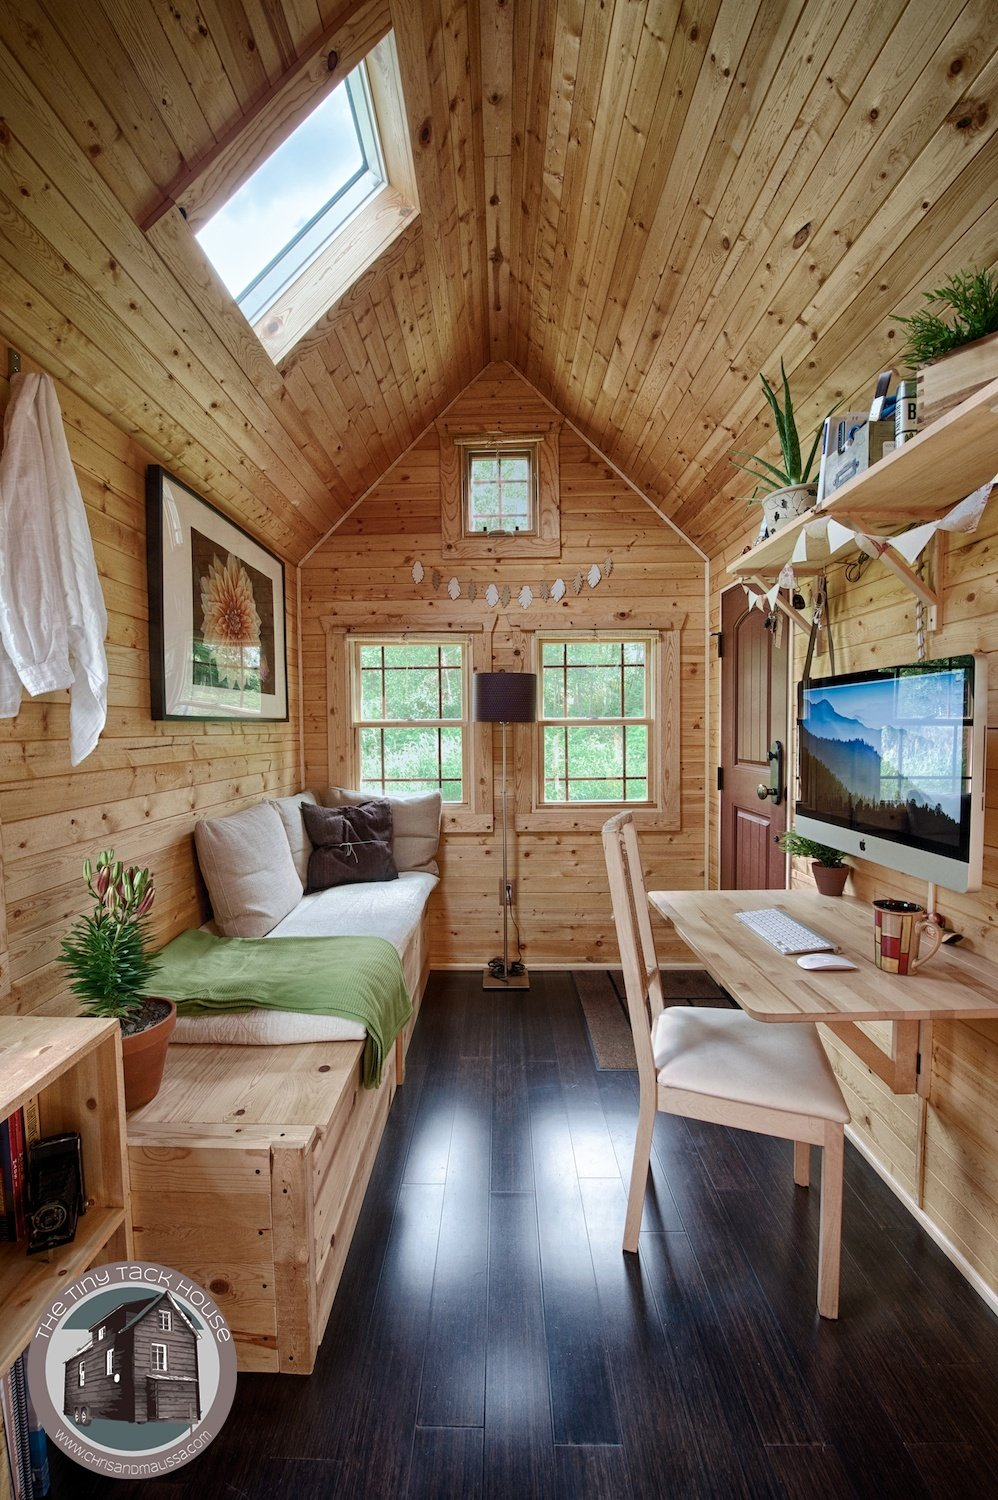 16 tiny houses you wish you could live in for Interior designs for tiny houses